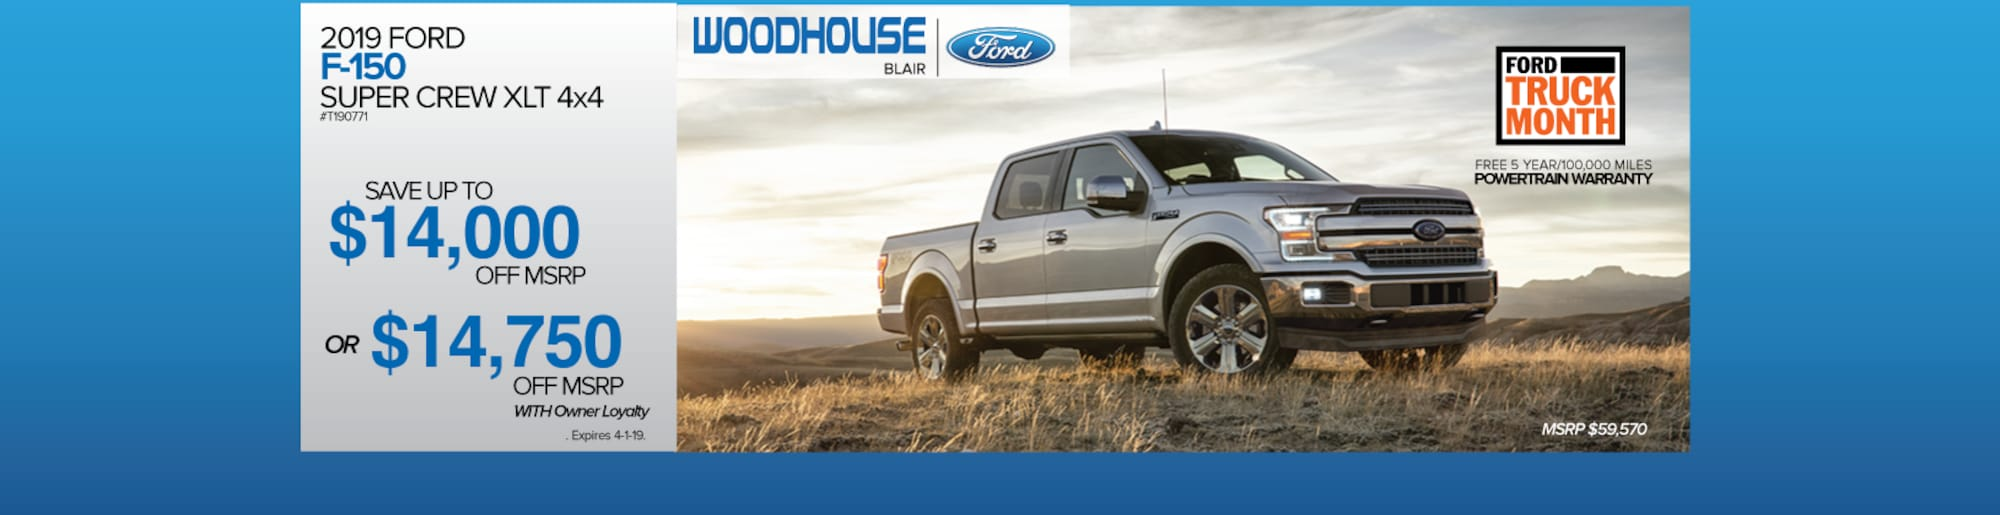 Woodhouse Blair Ne >> New & Used Ford Models | Woodhouse Ford Inc. | Blair, NE